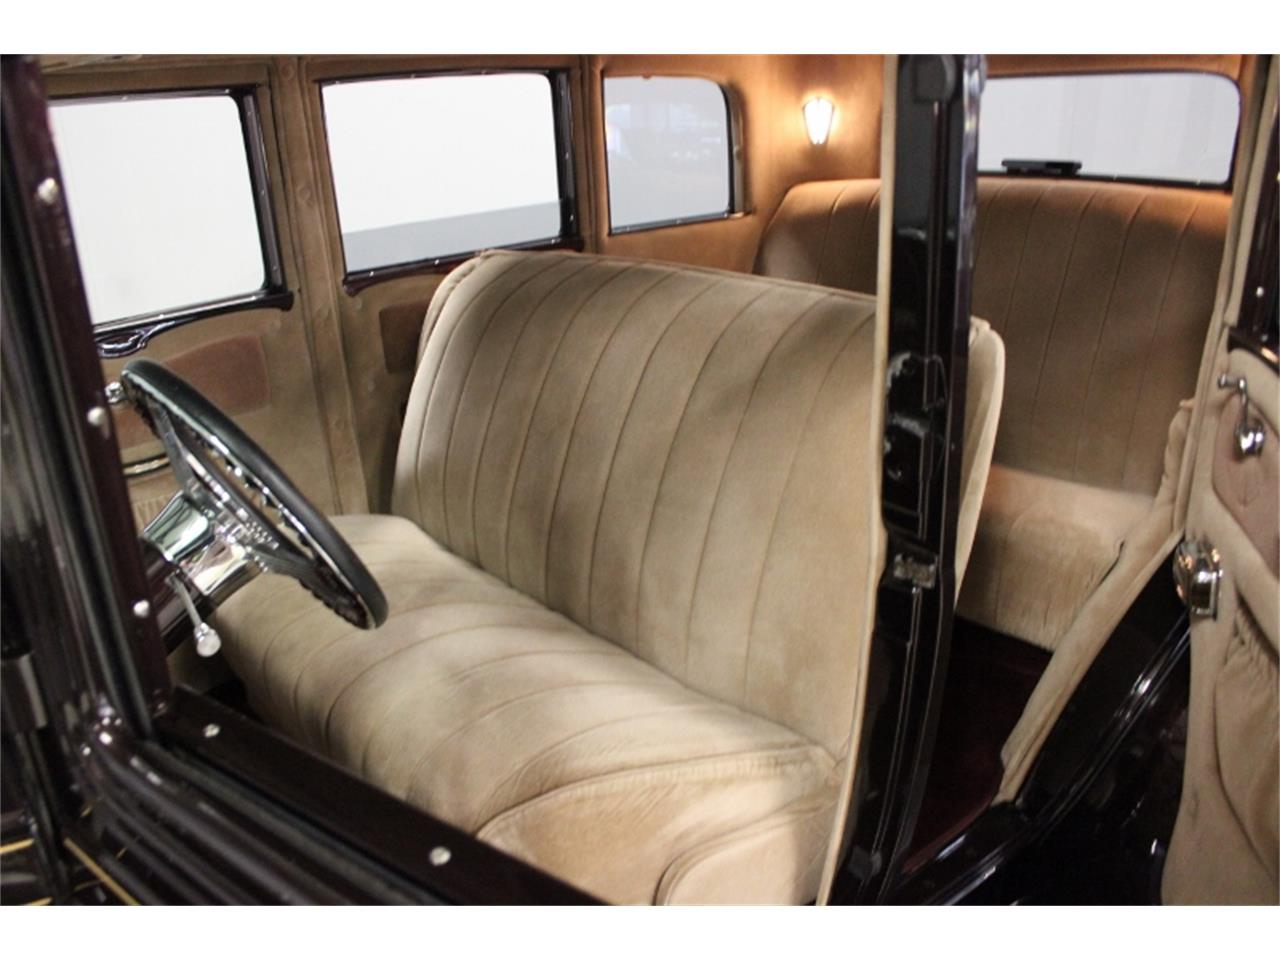 Large Picture of Classic 1932 Pontiac Sedan located in North Carolina - $45,000.00 Offered by East Coast Classic Cars - OTPB